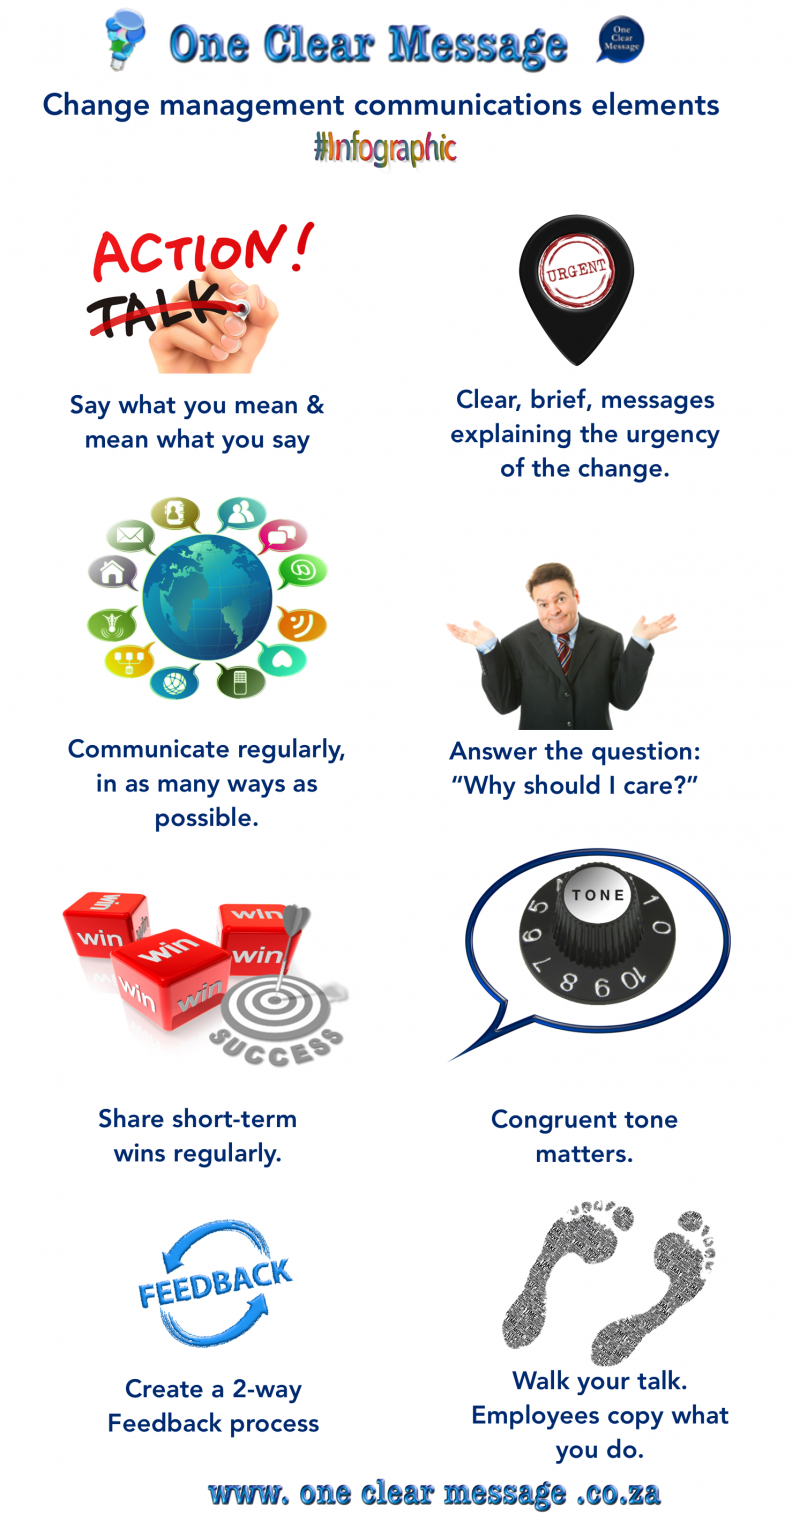 Change management communications elements Infographic